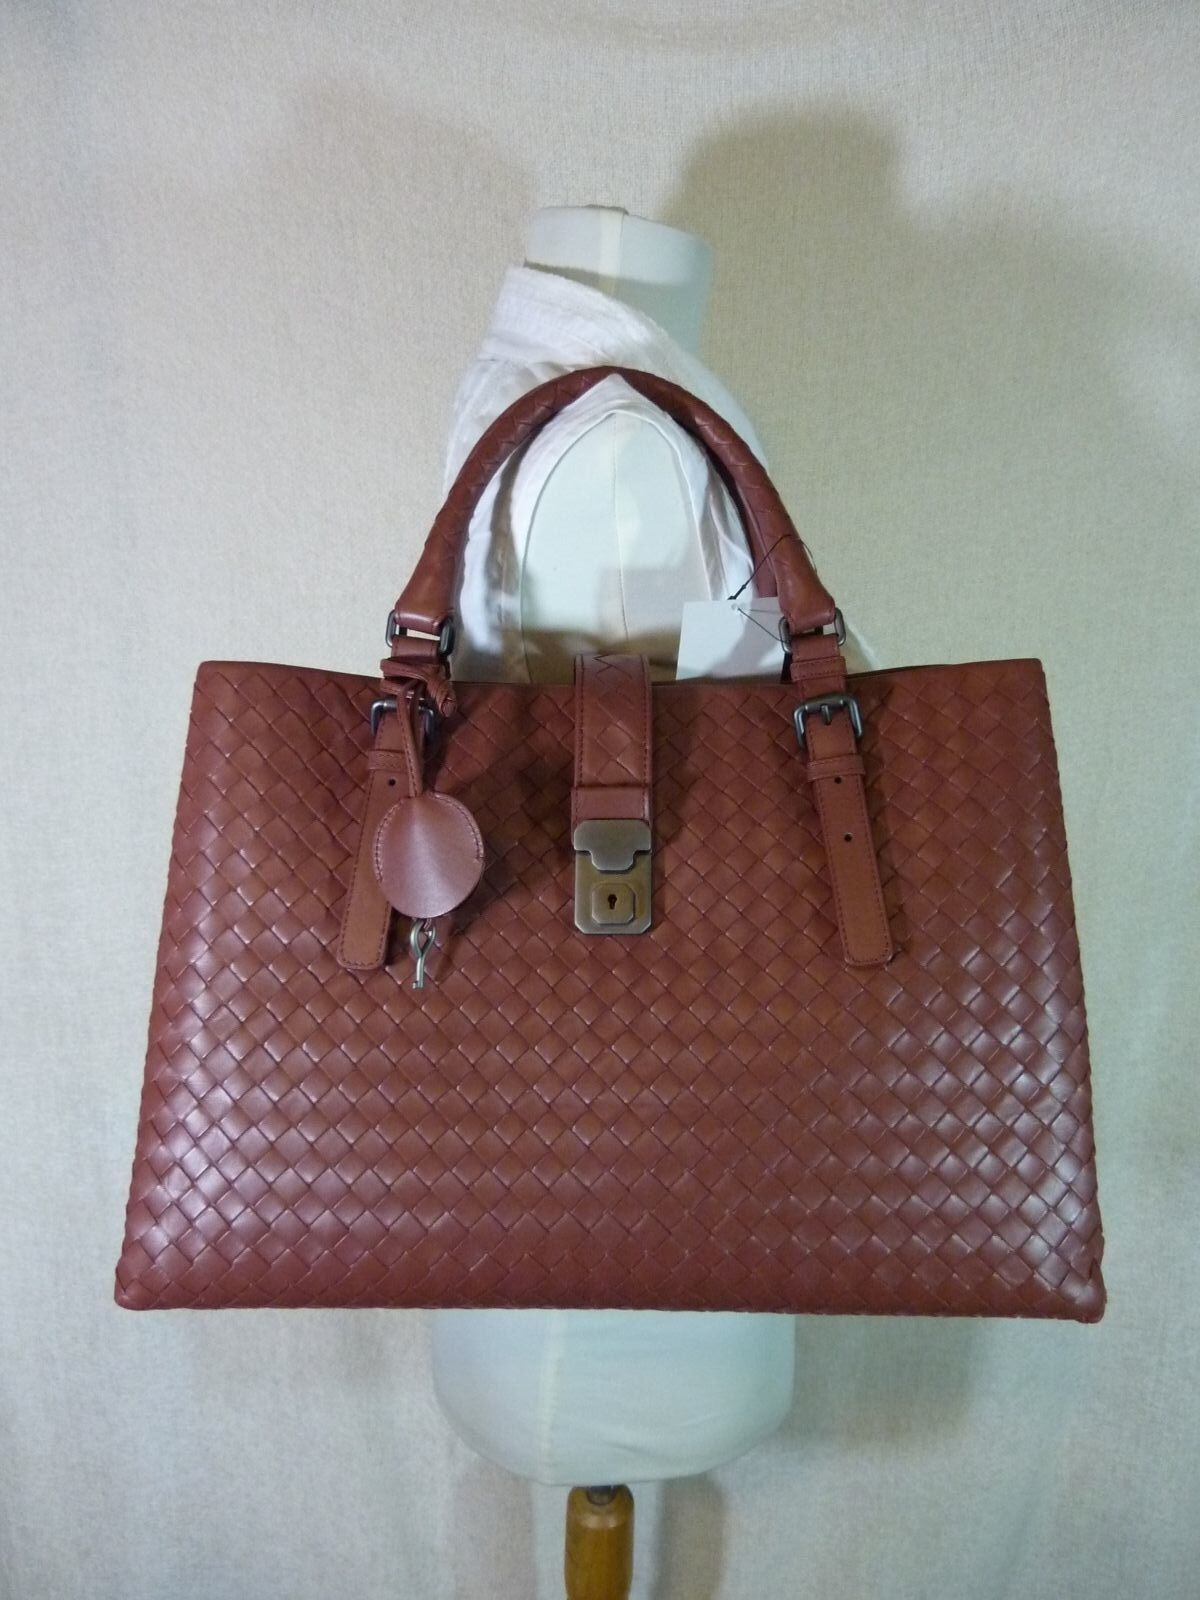 AUTH NWT Bottega Veneta Medium Roma Bag In Russet Intrecciato Calf Leather image 2